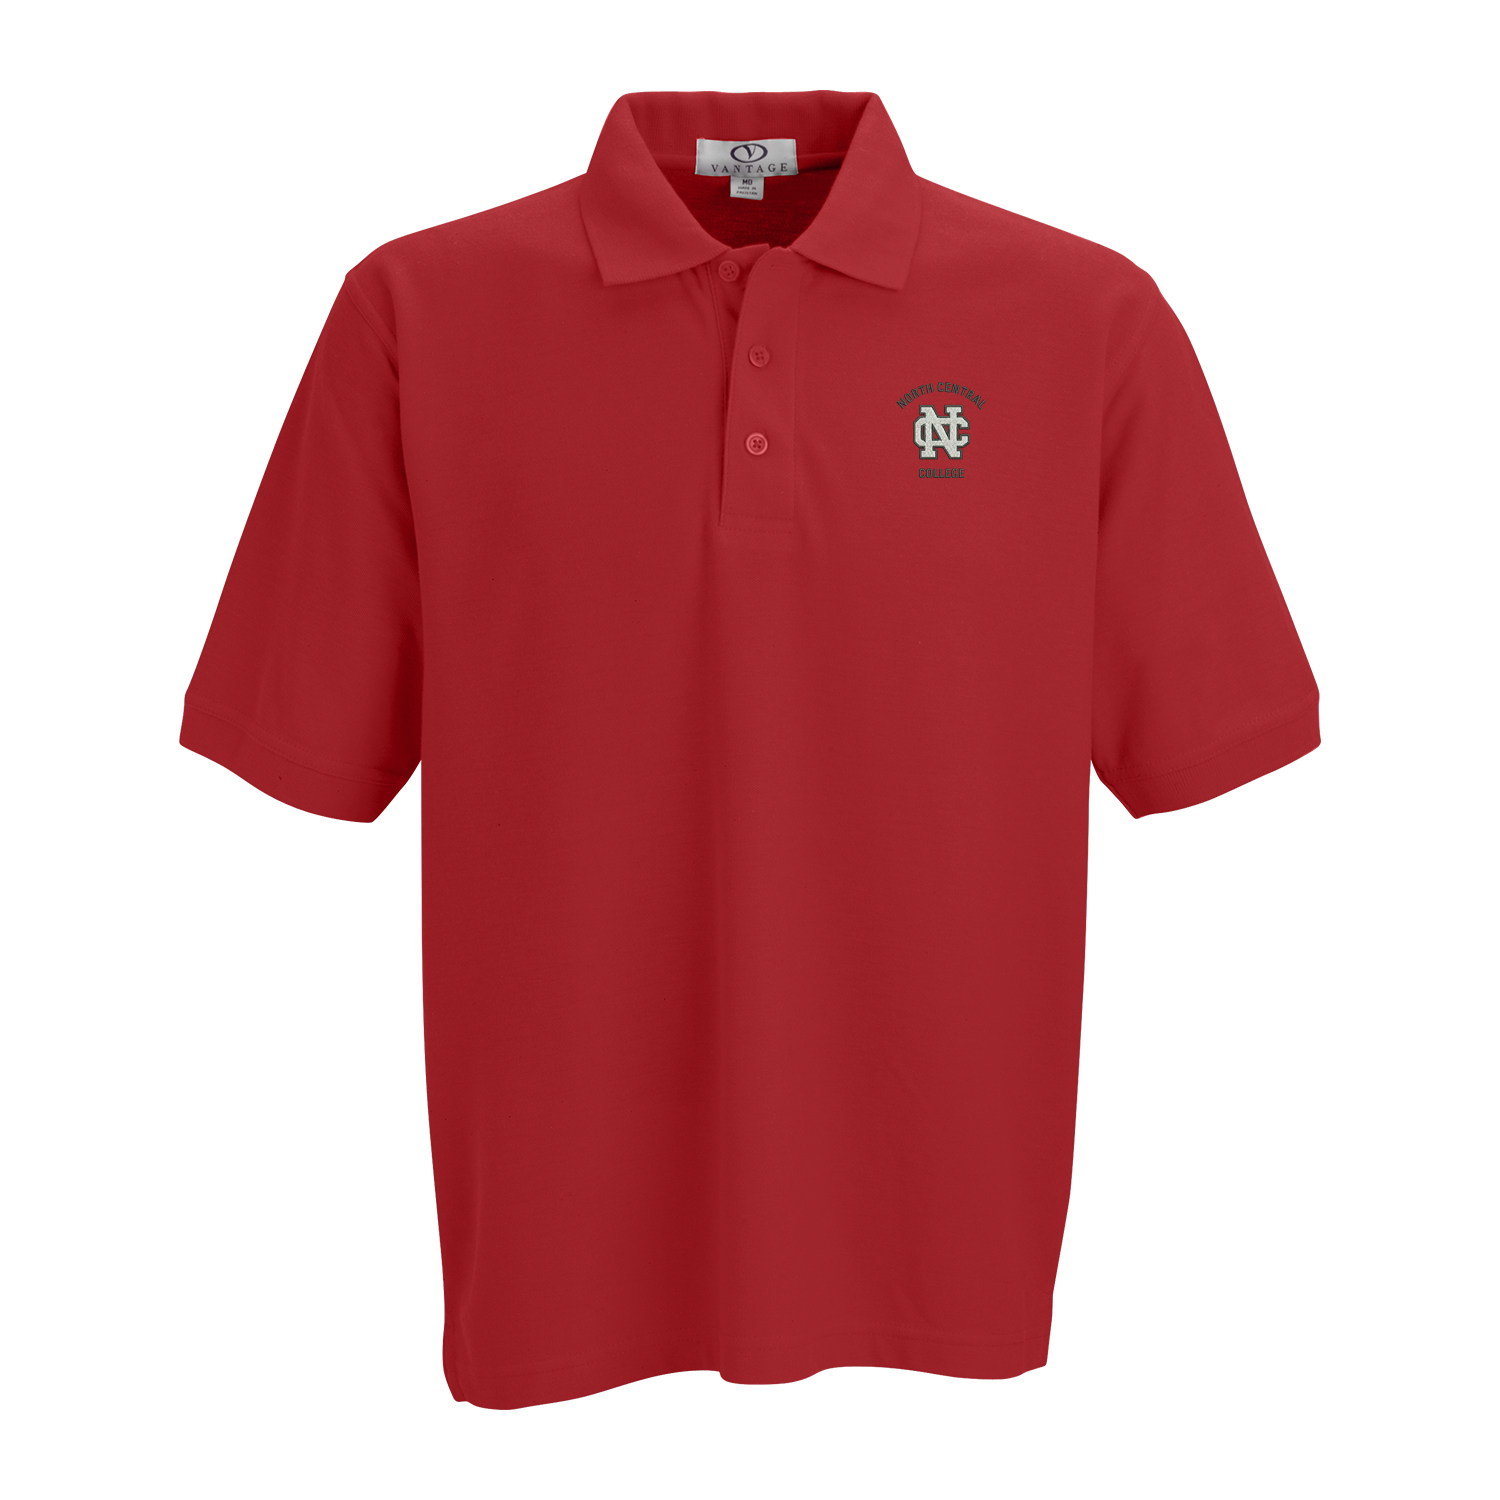 Image for the Unisex Cotton-Rich Polo(Vantage) product